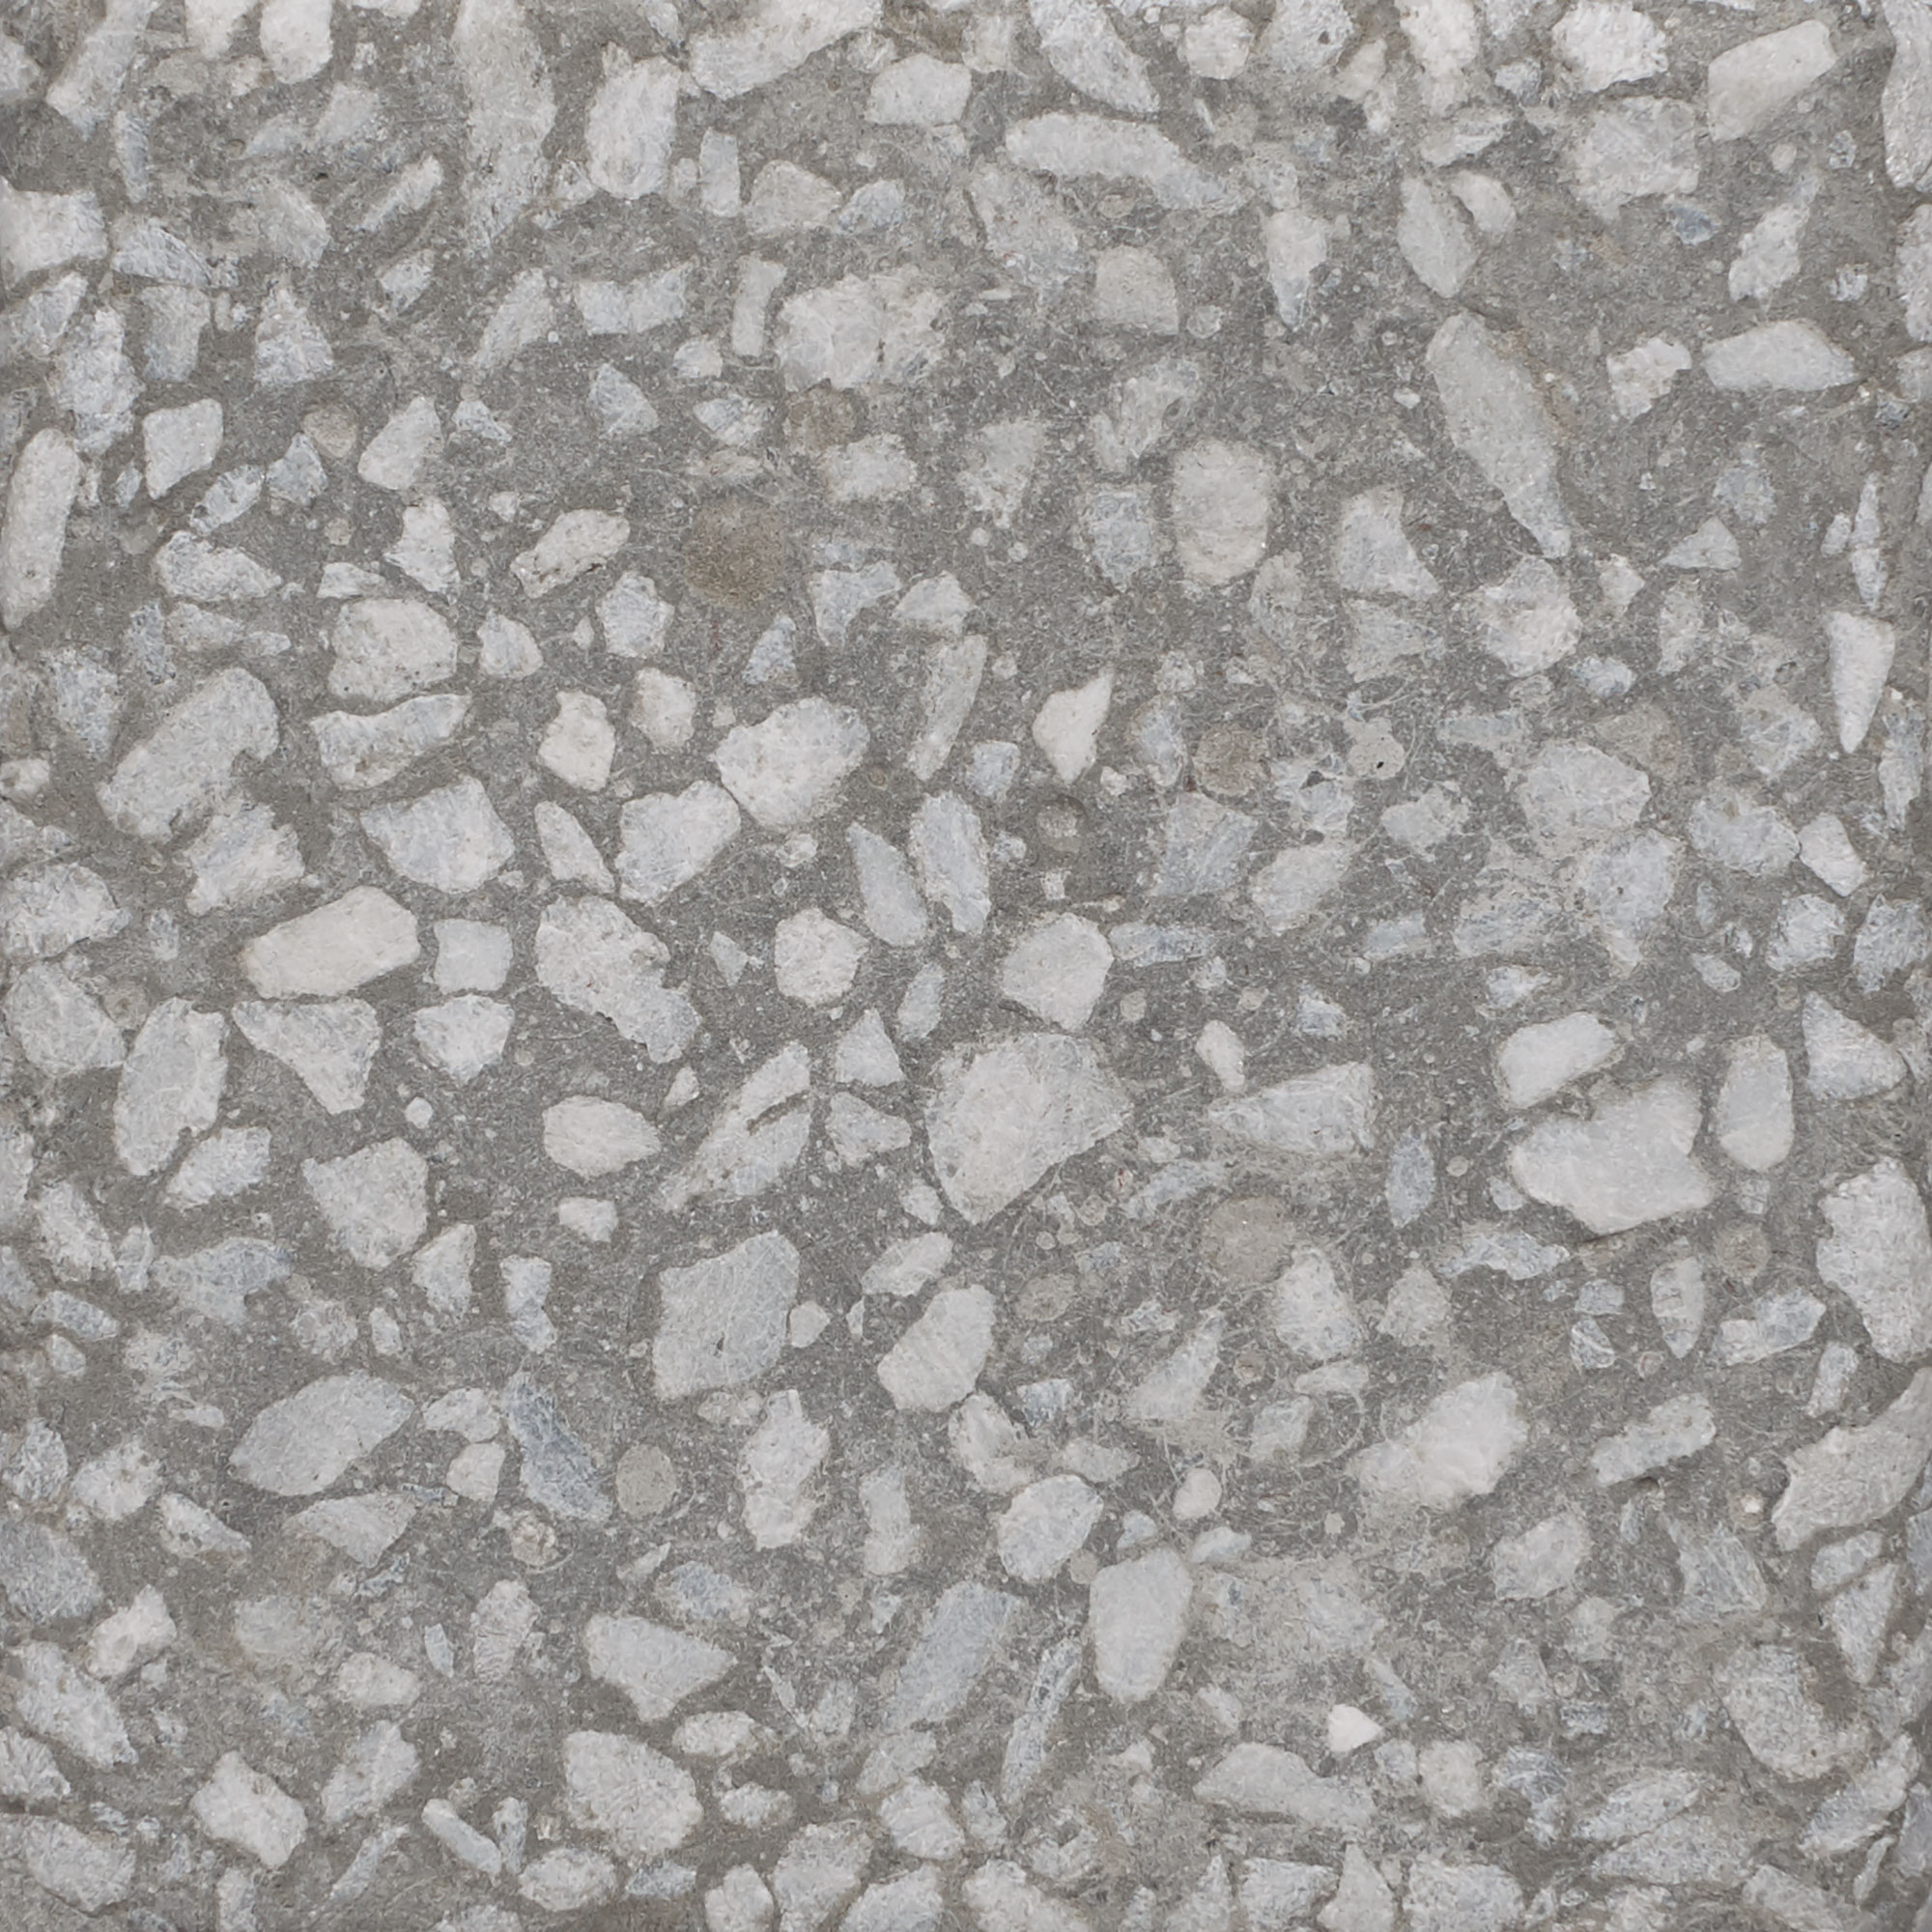 Grey Portland Cement with White Chips. (501)